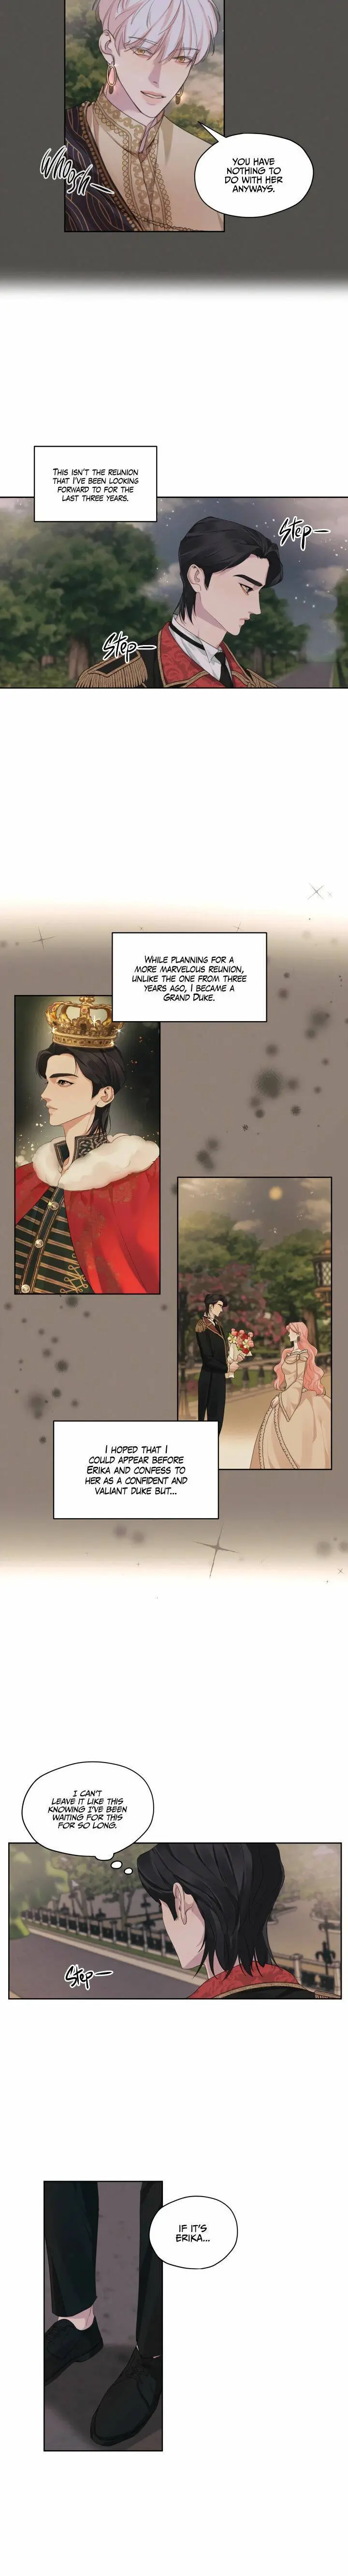 I Am The Male Lead'S Ex-Girlfriend - chapter 10 - #2